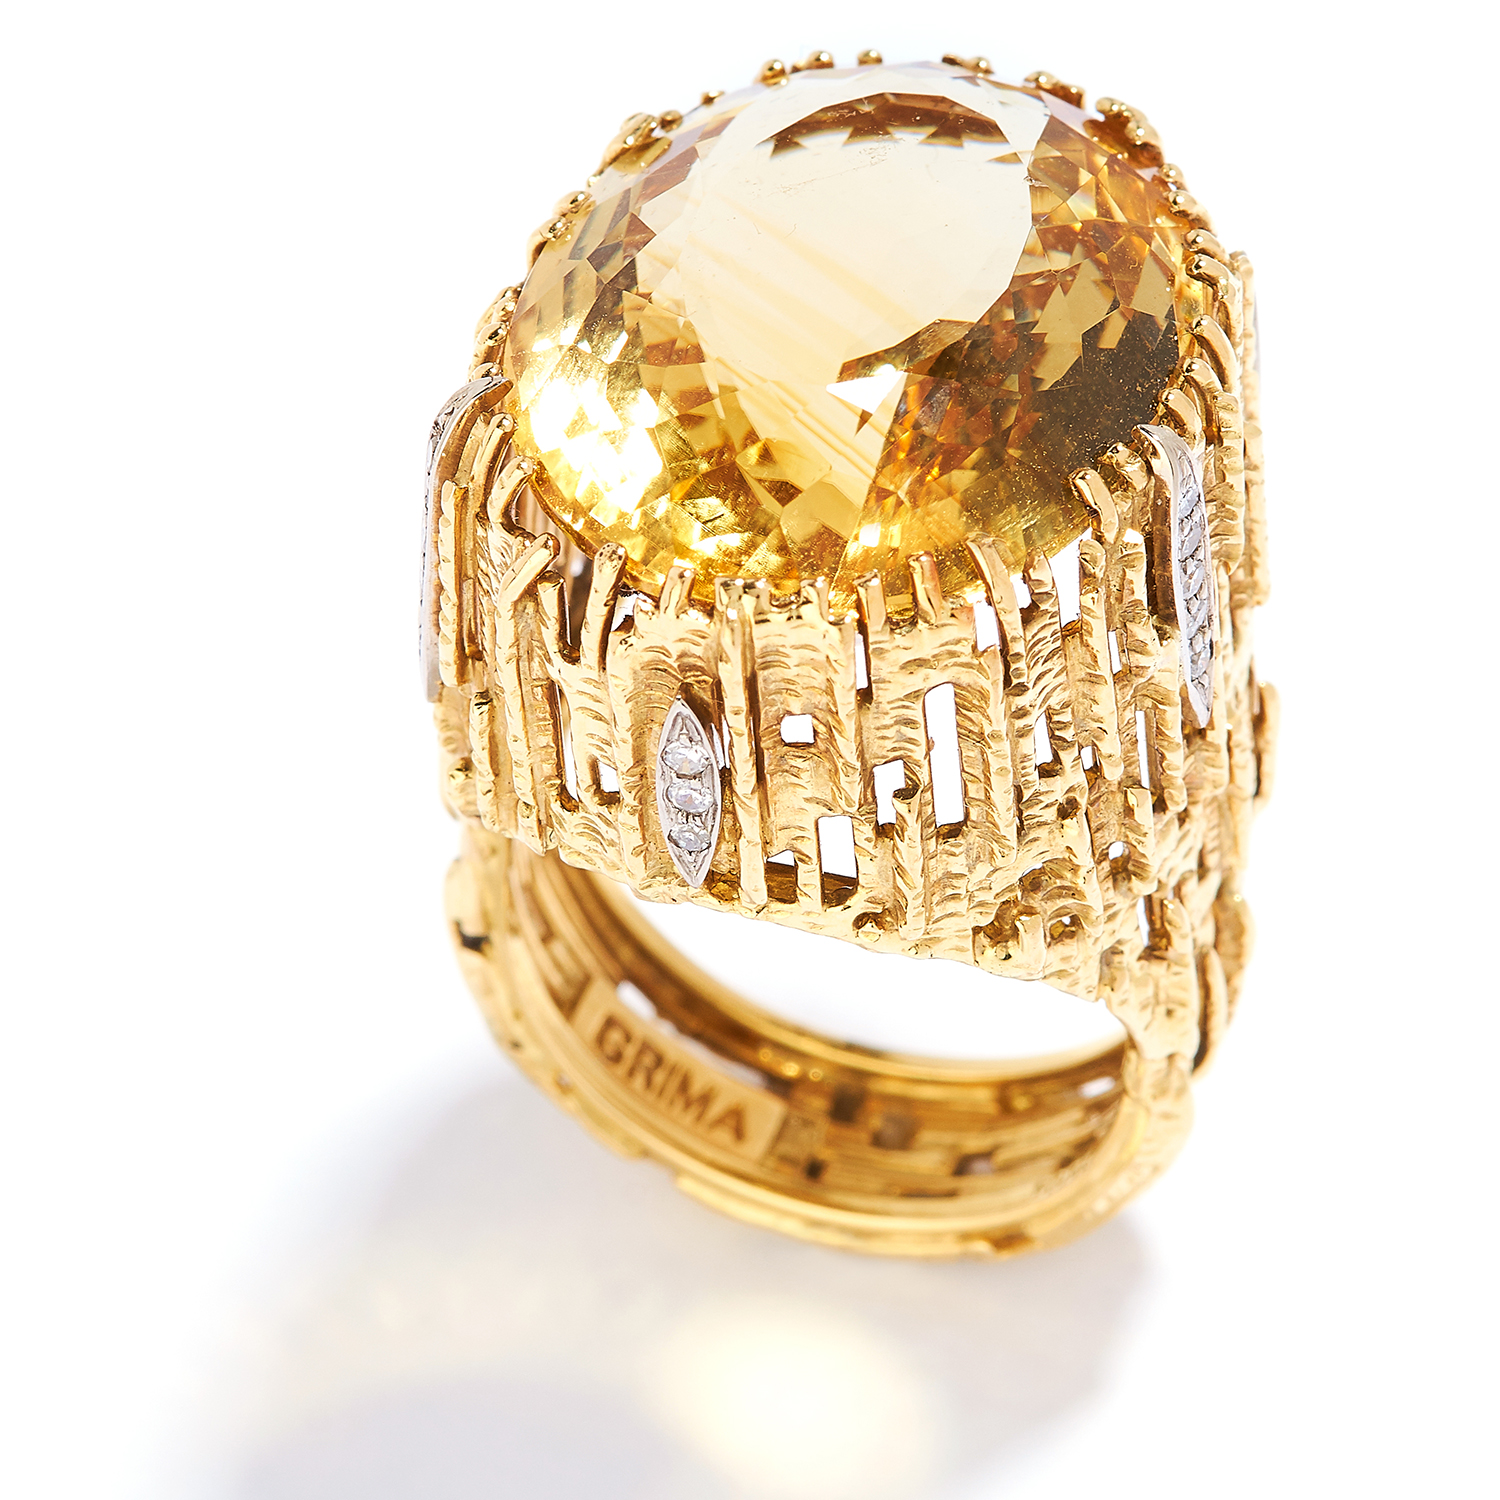 CITRINE AND DIAMOND RING, GRIMA, CIRCA 1972, in 18ct yellow gold, set with an oval cut citrine in - Bild 2 aus 2